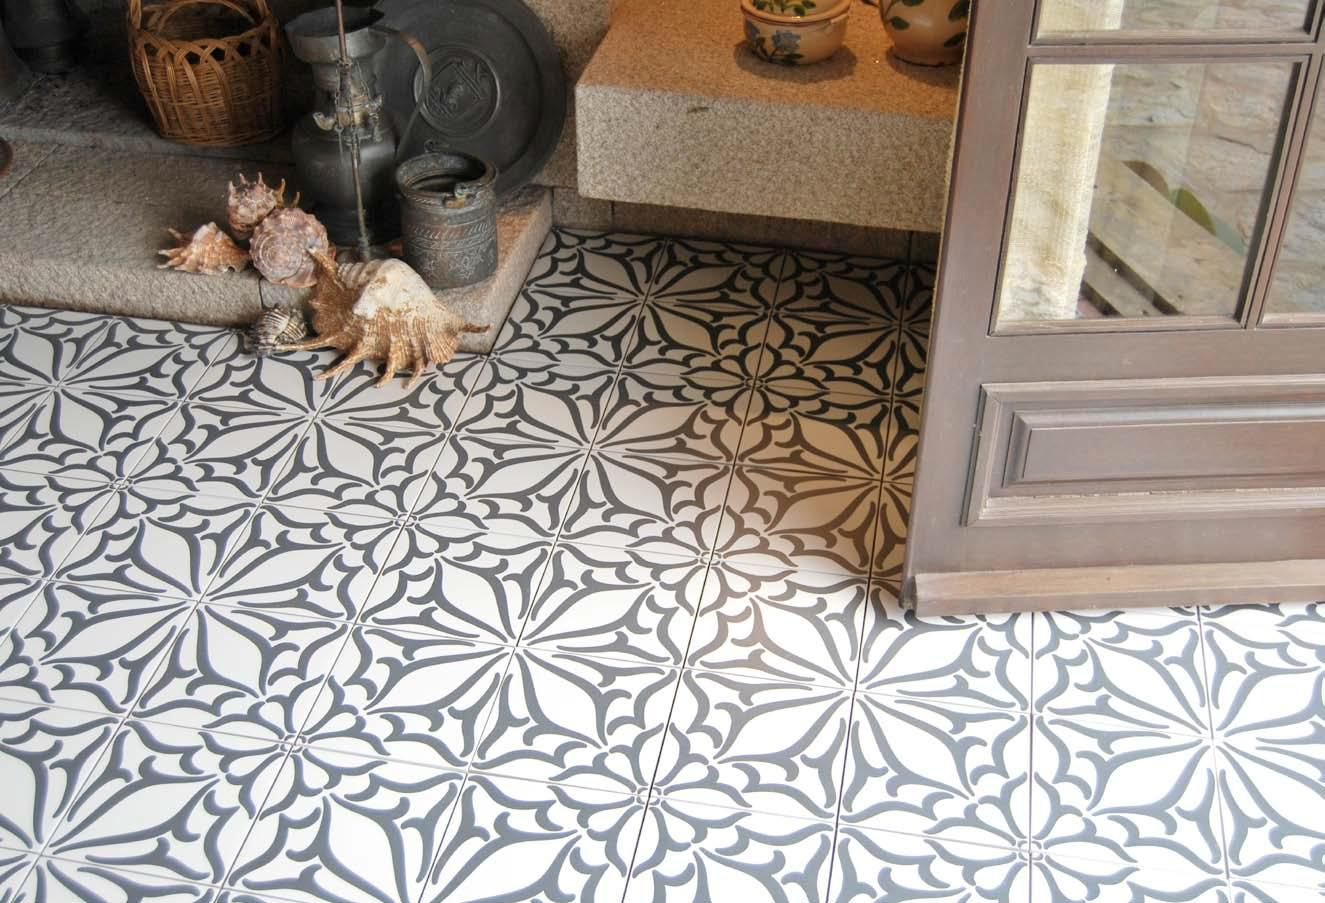 Carrelage aspect carreau ciment krocim decor classic noir for Carrelage noir